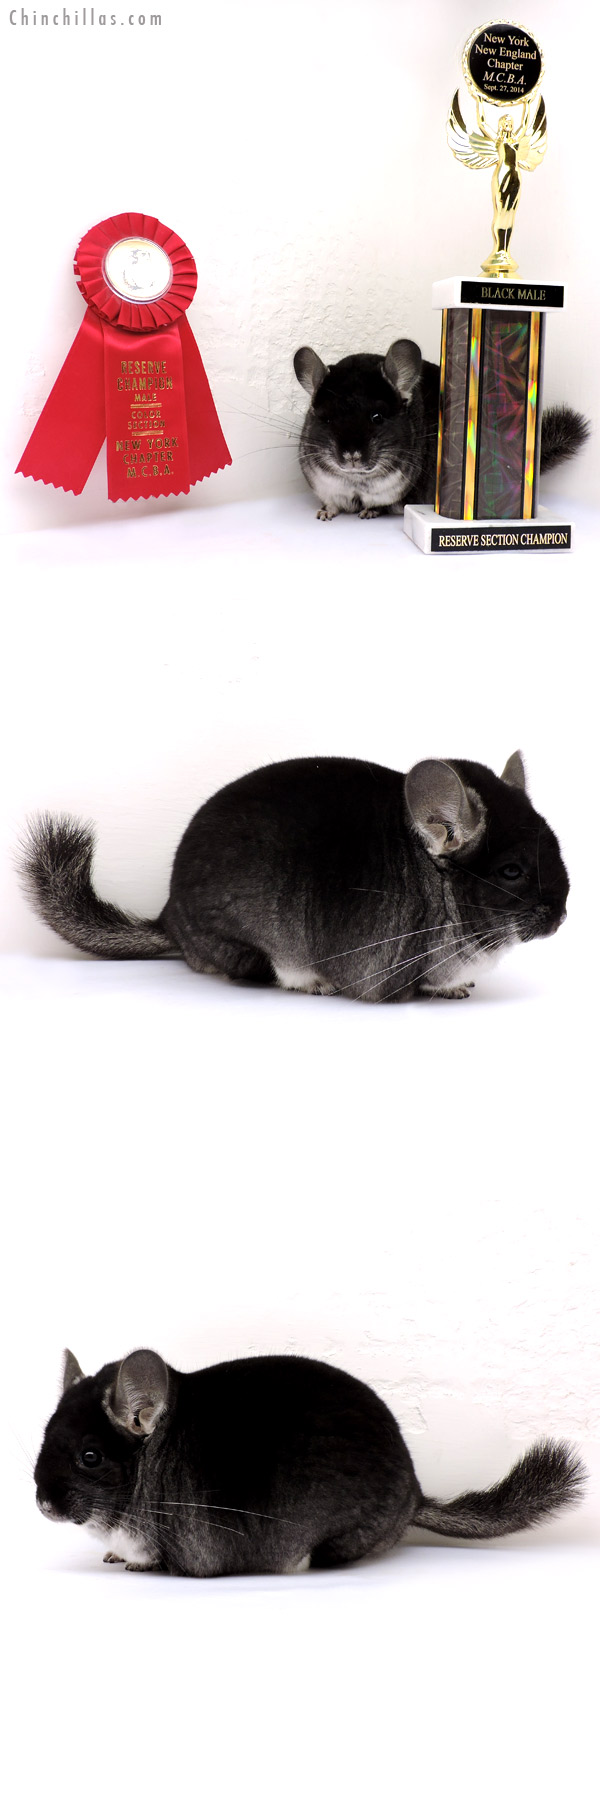 14246 Brevi type Reserve Section Champion Black Velvet Male Chinchilla